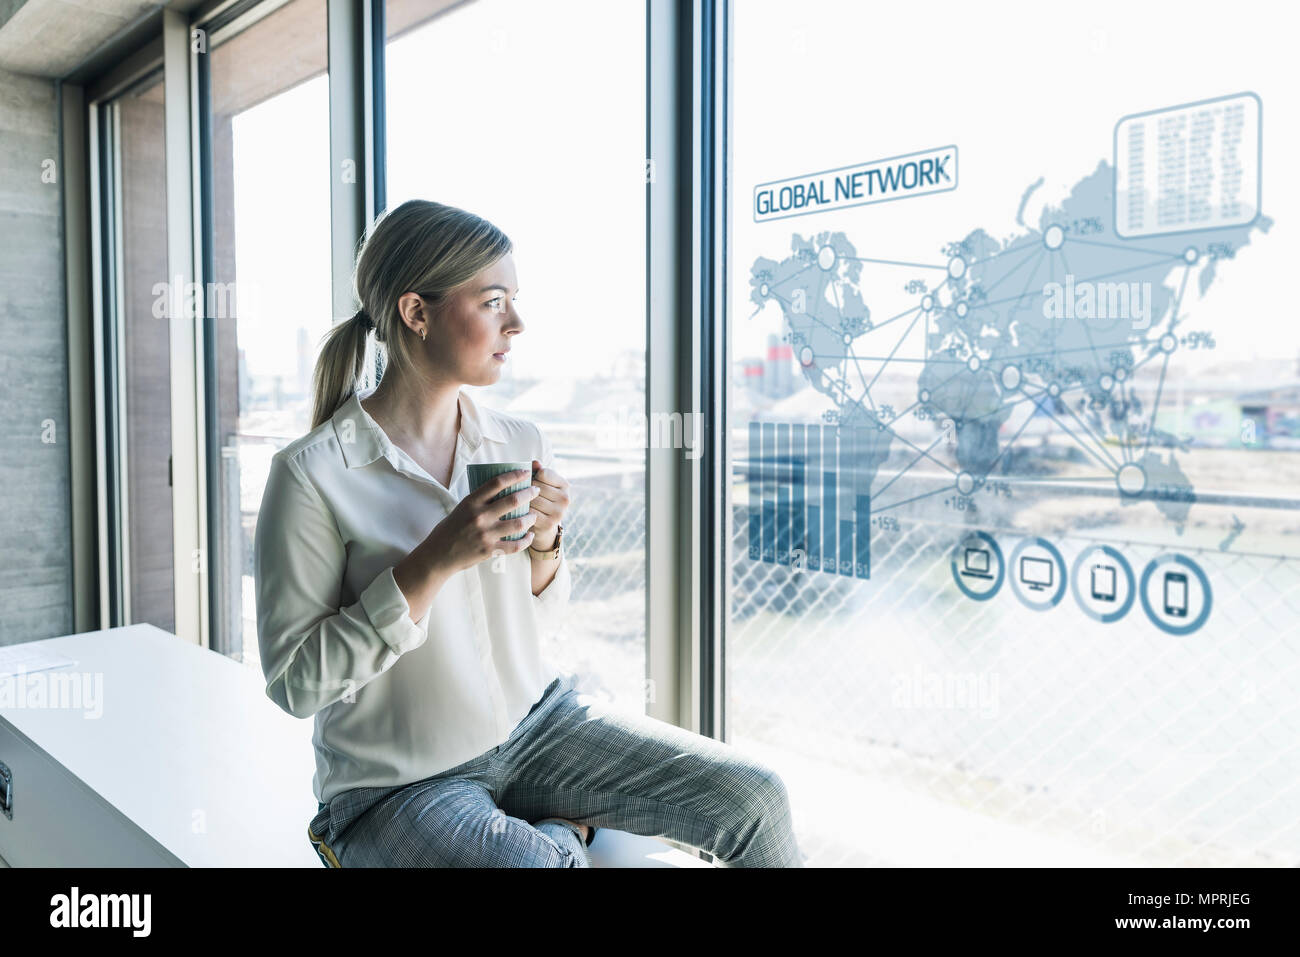 Young businesswoman looking at virtual world map at window pane in office - Stock Image